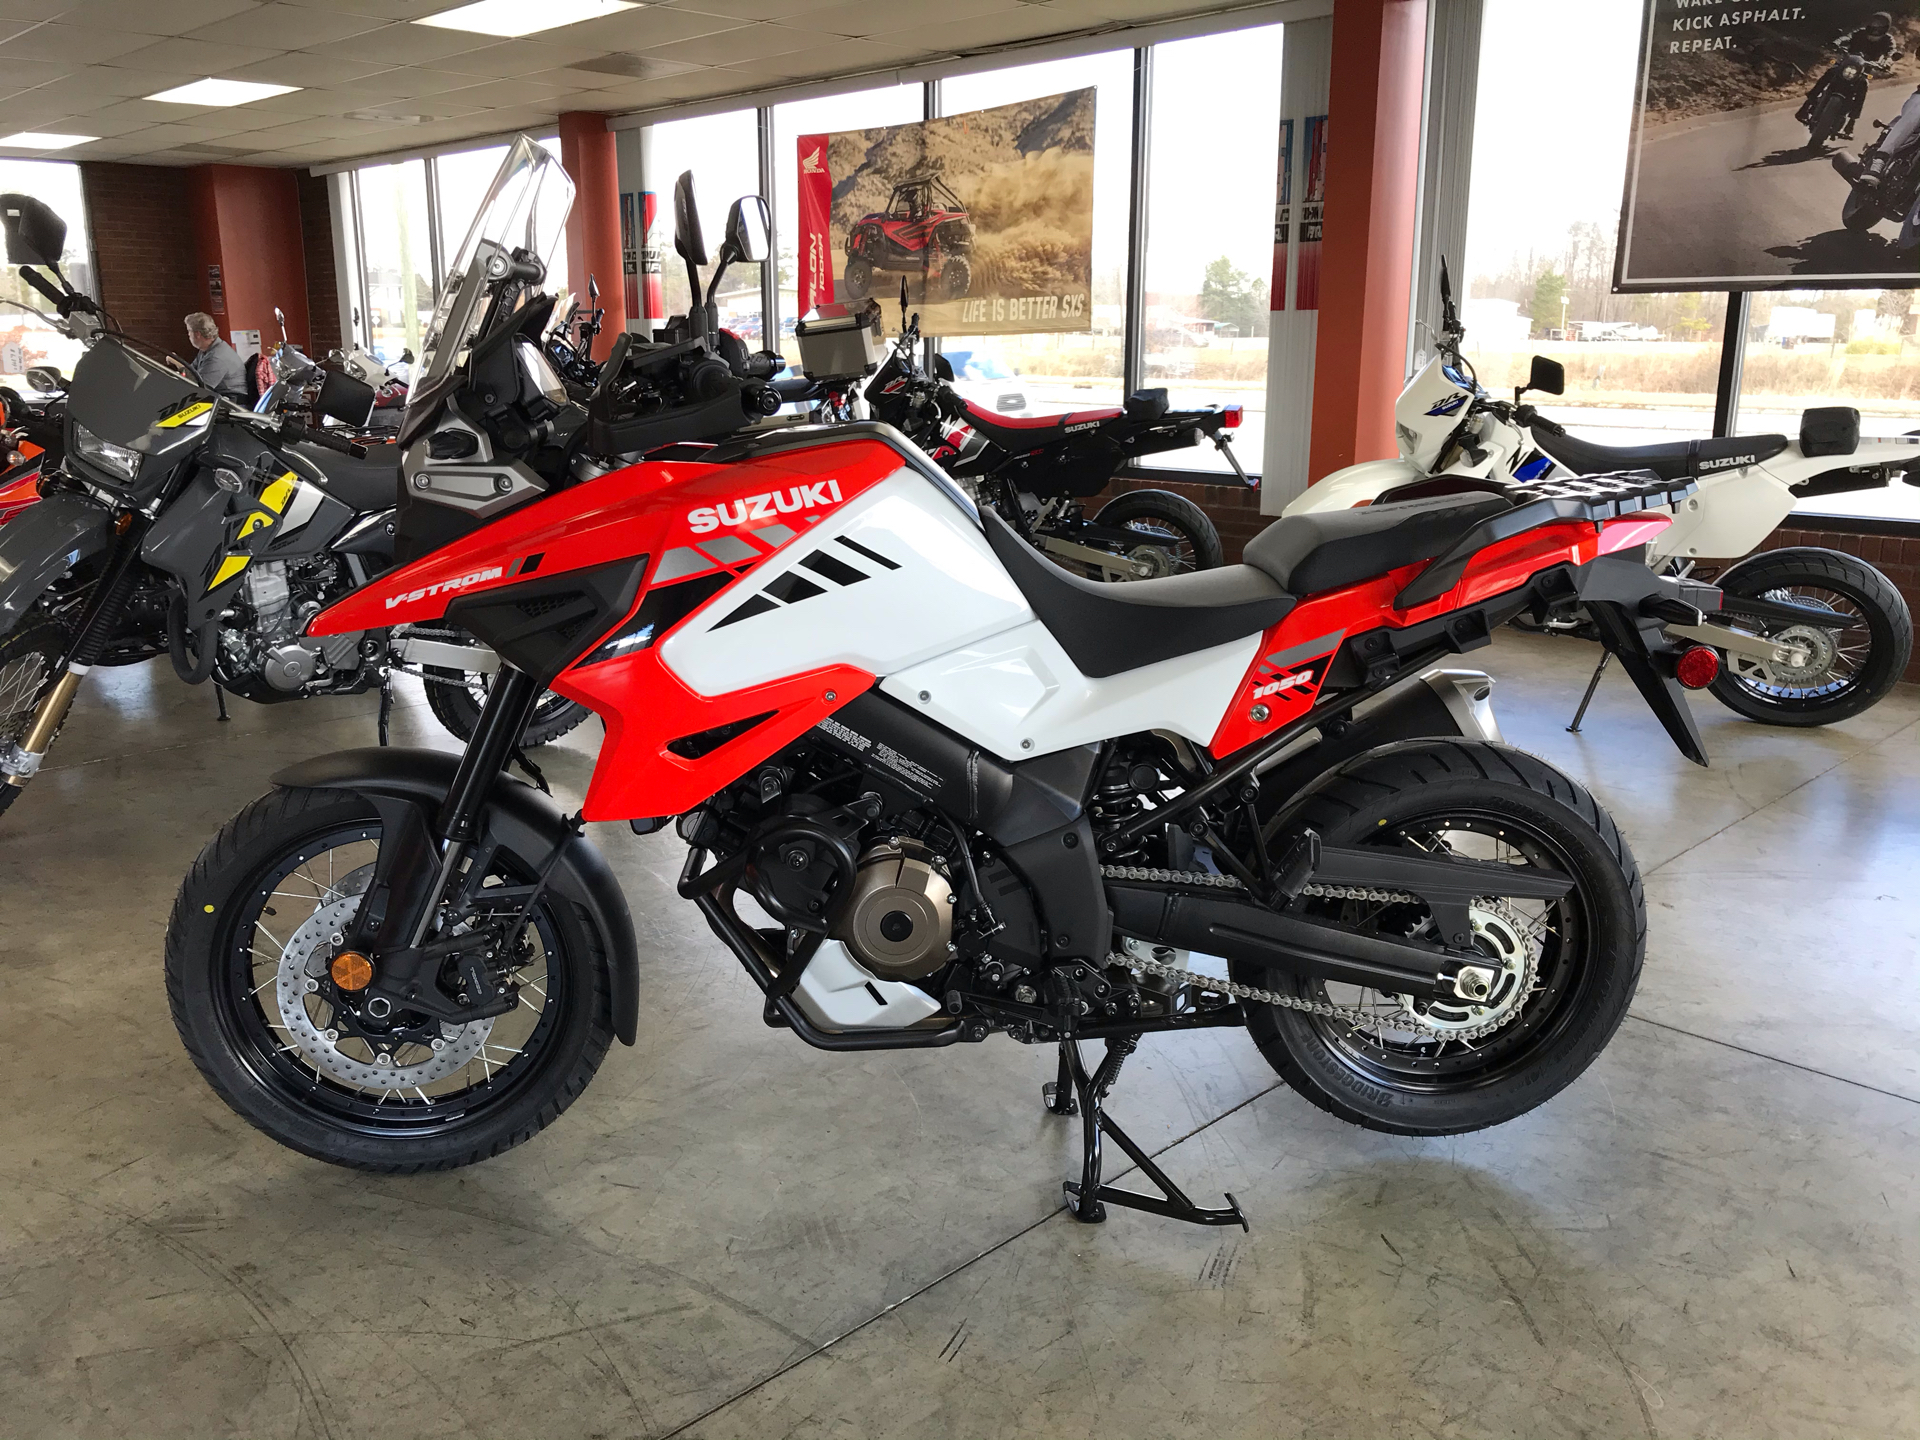 2020 Suzuki V-Strom 1050XT in Sanford, North Carolina - Photo 5